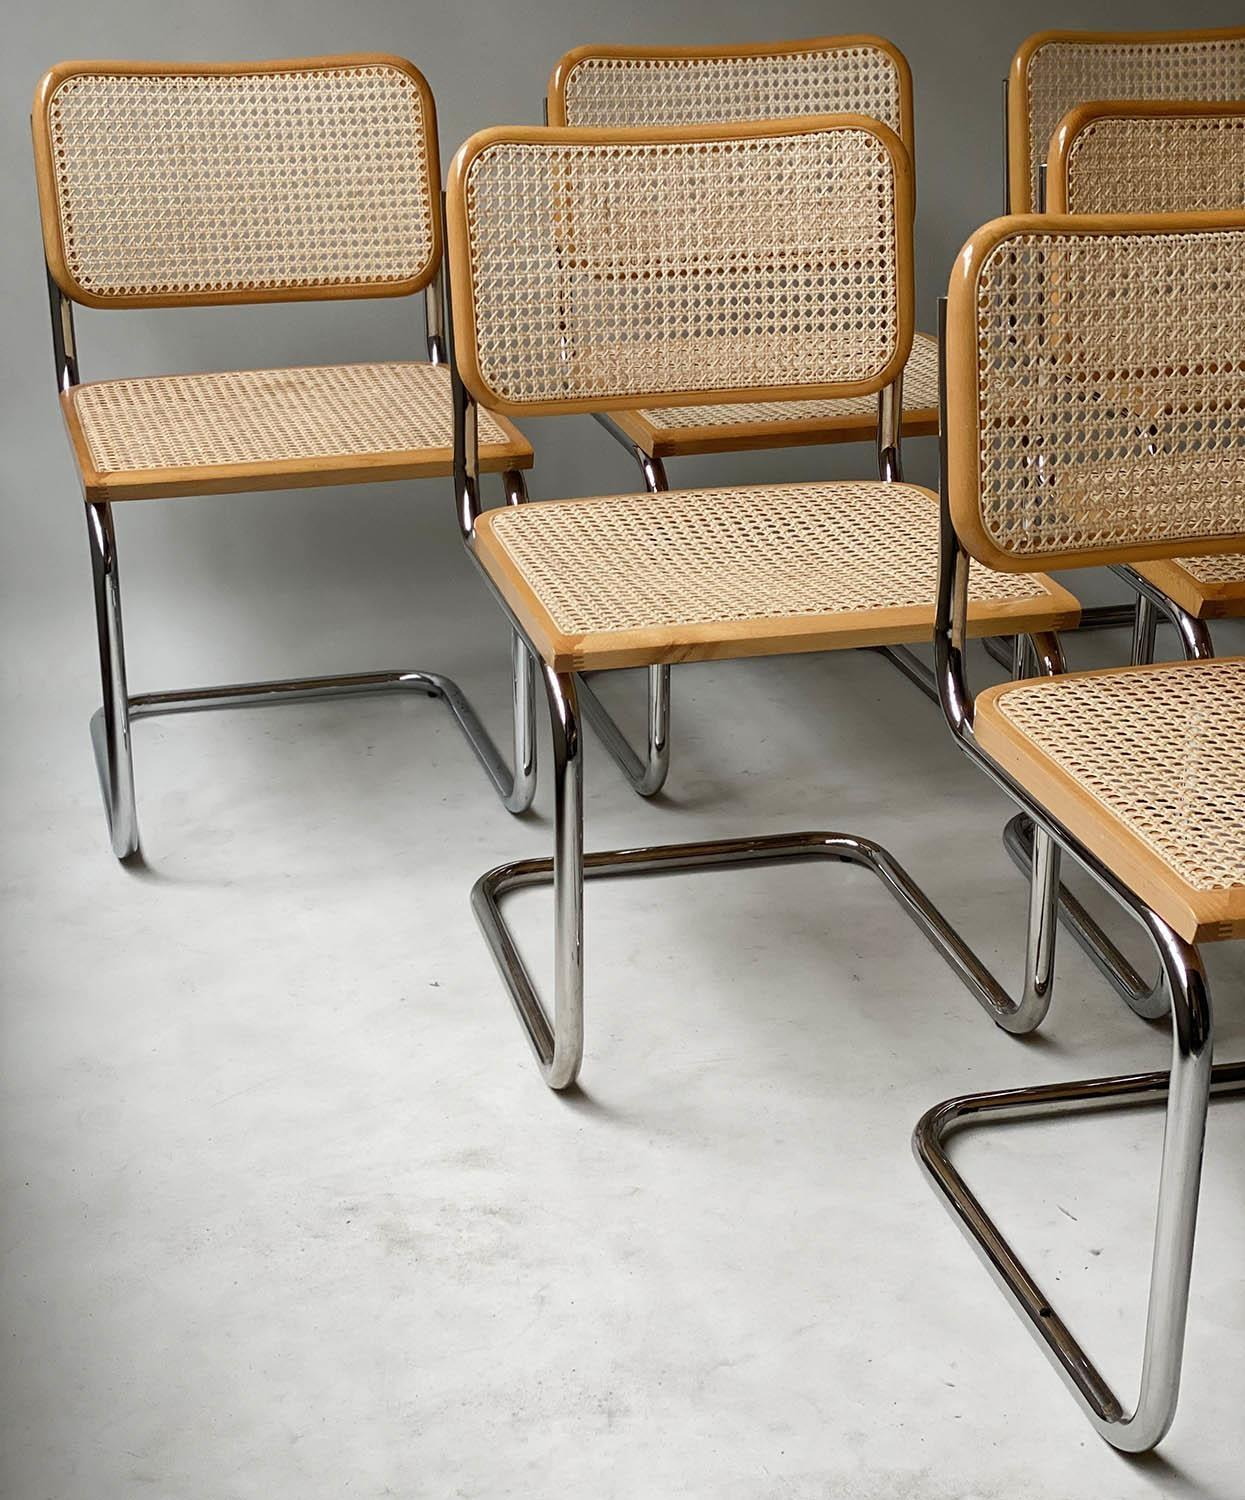 AFTER MARCEL BREUER DINING CHAIRS, Cesca style chairs, a set of six beech wood cane paneled and - Image 10 of 11